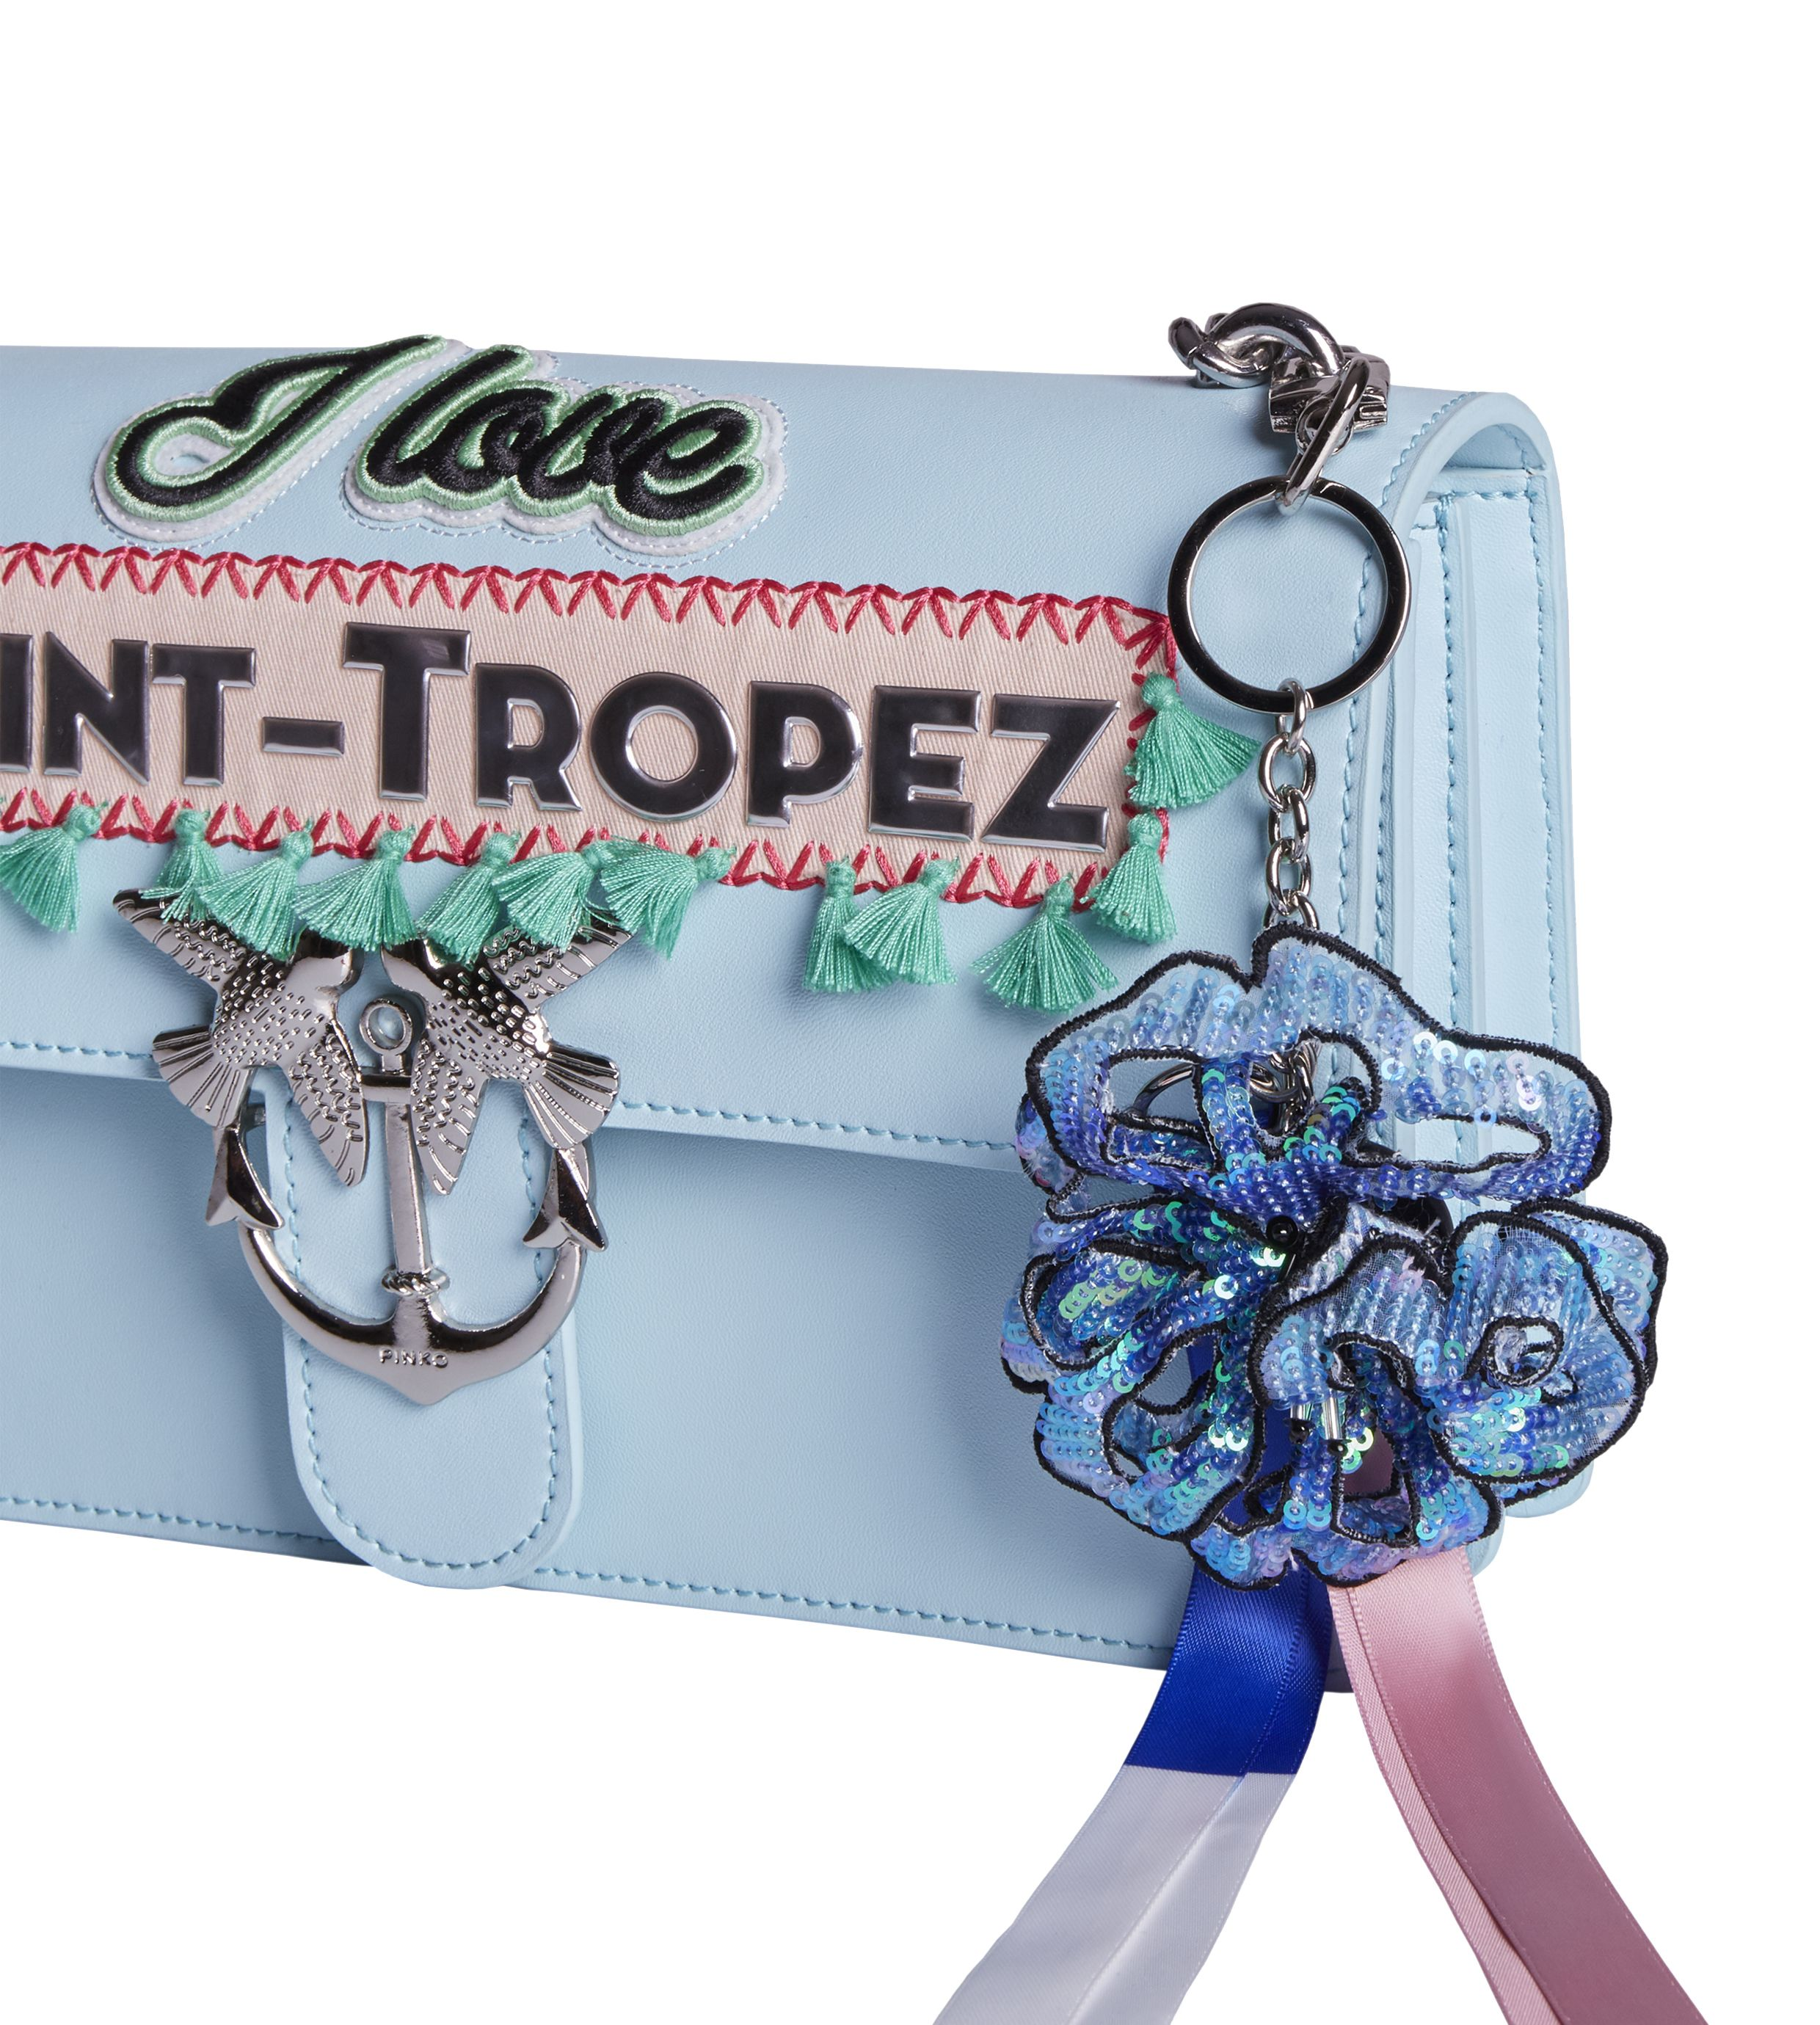 SAINT TROPEZ PINKO Love Bag Resort - Limited Edition. Available only at our PINKO store in Saint Tropez, 7, Rue Gambetta.